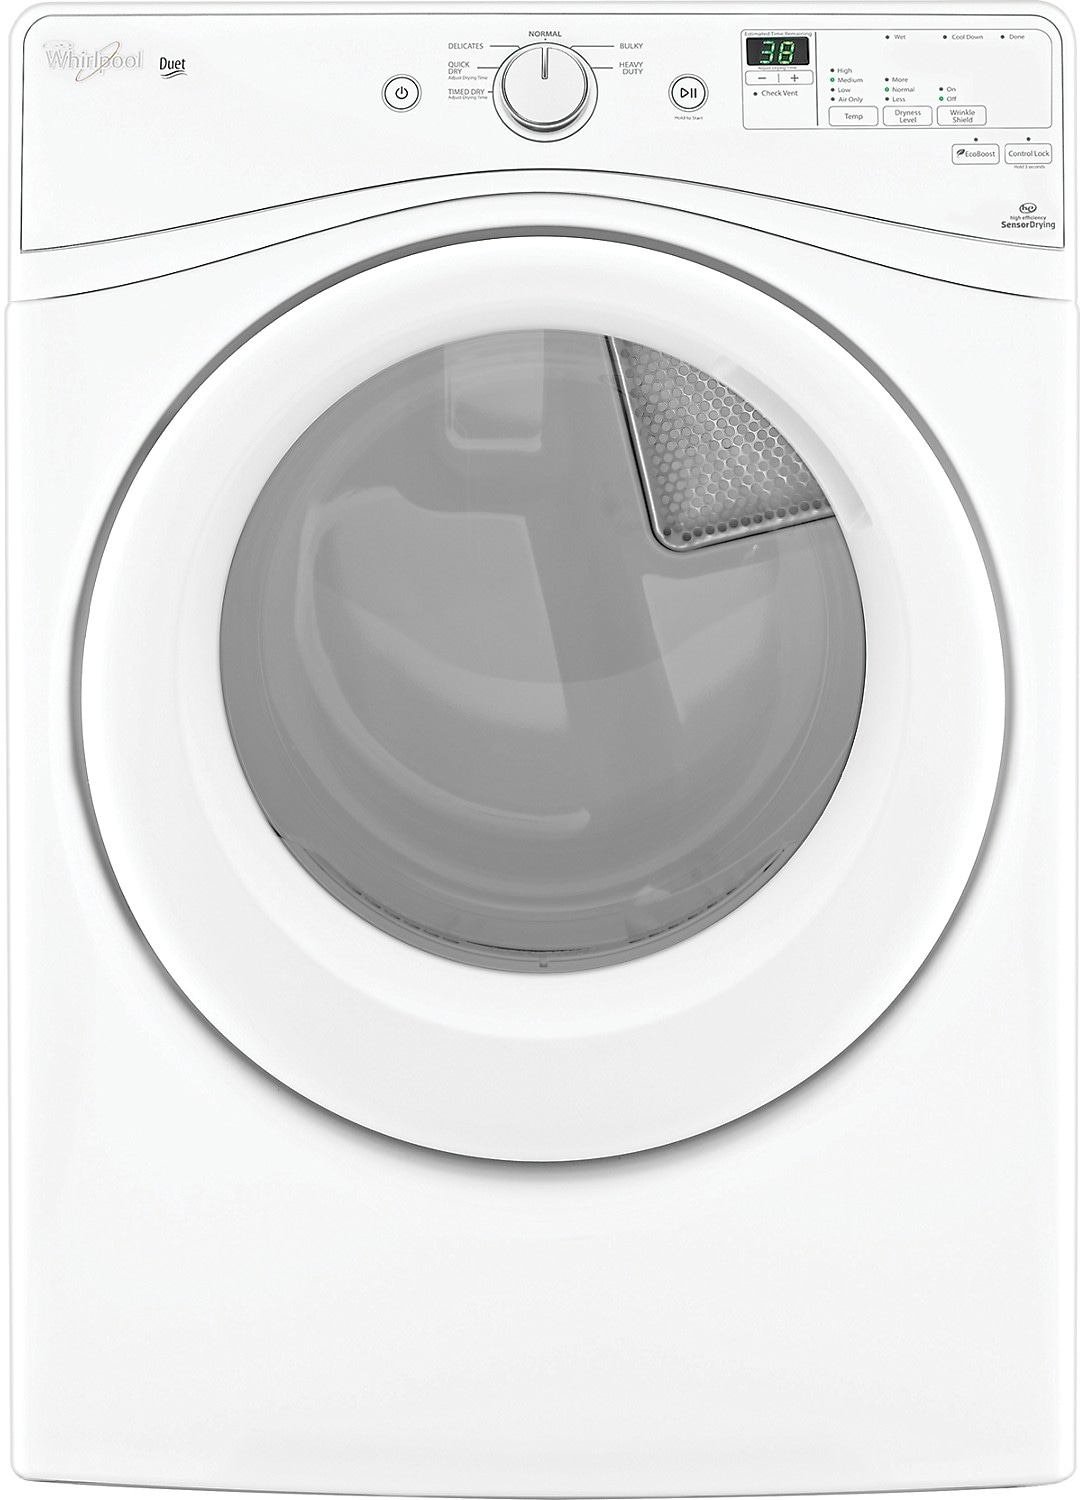 Washers and Dryers - Whirlpool® Duet® 7.4 Cu. Ft. Electric Dryer  - White